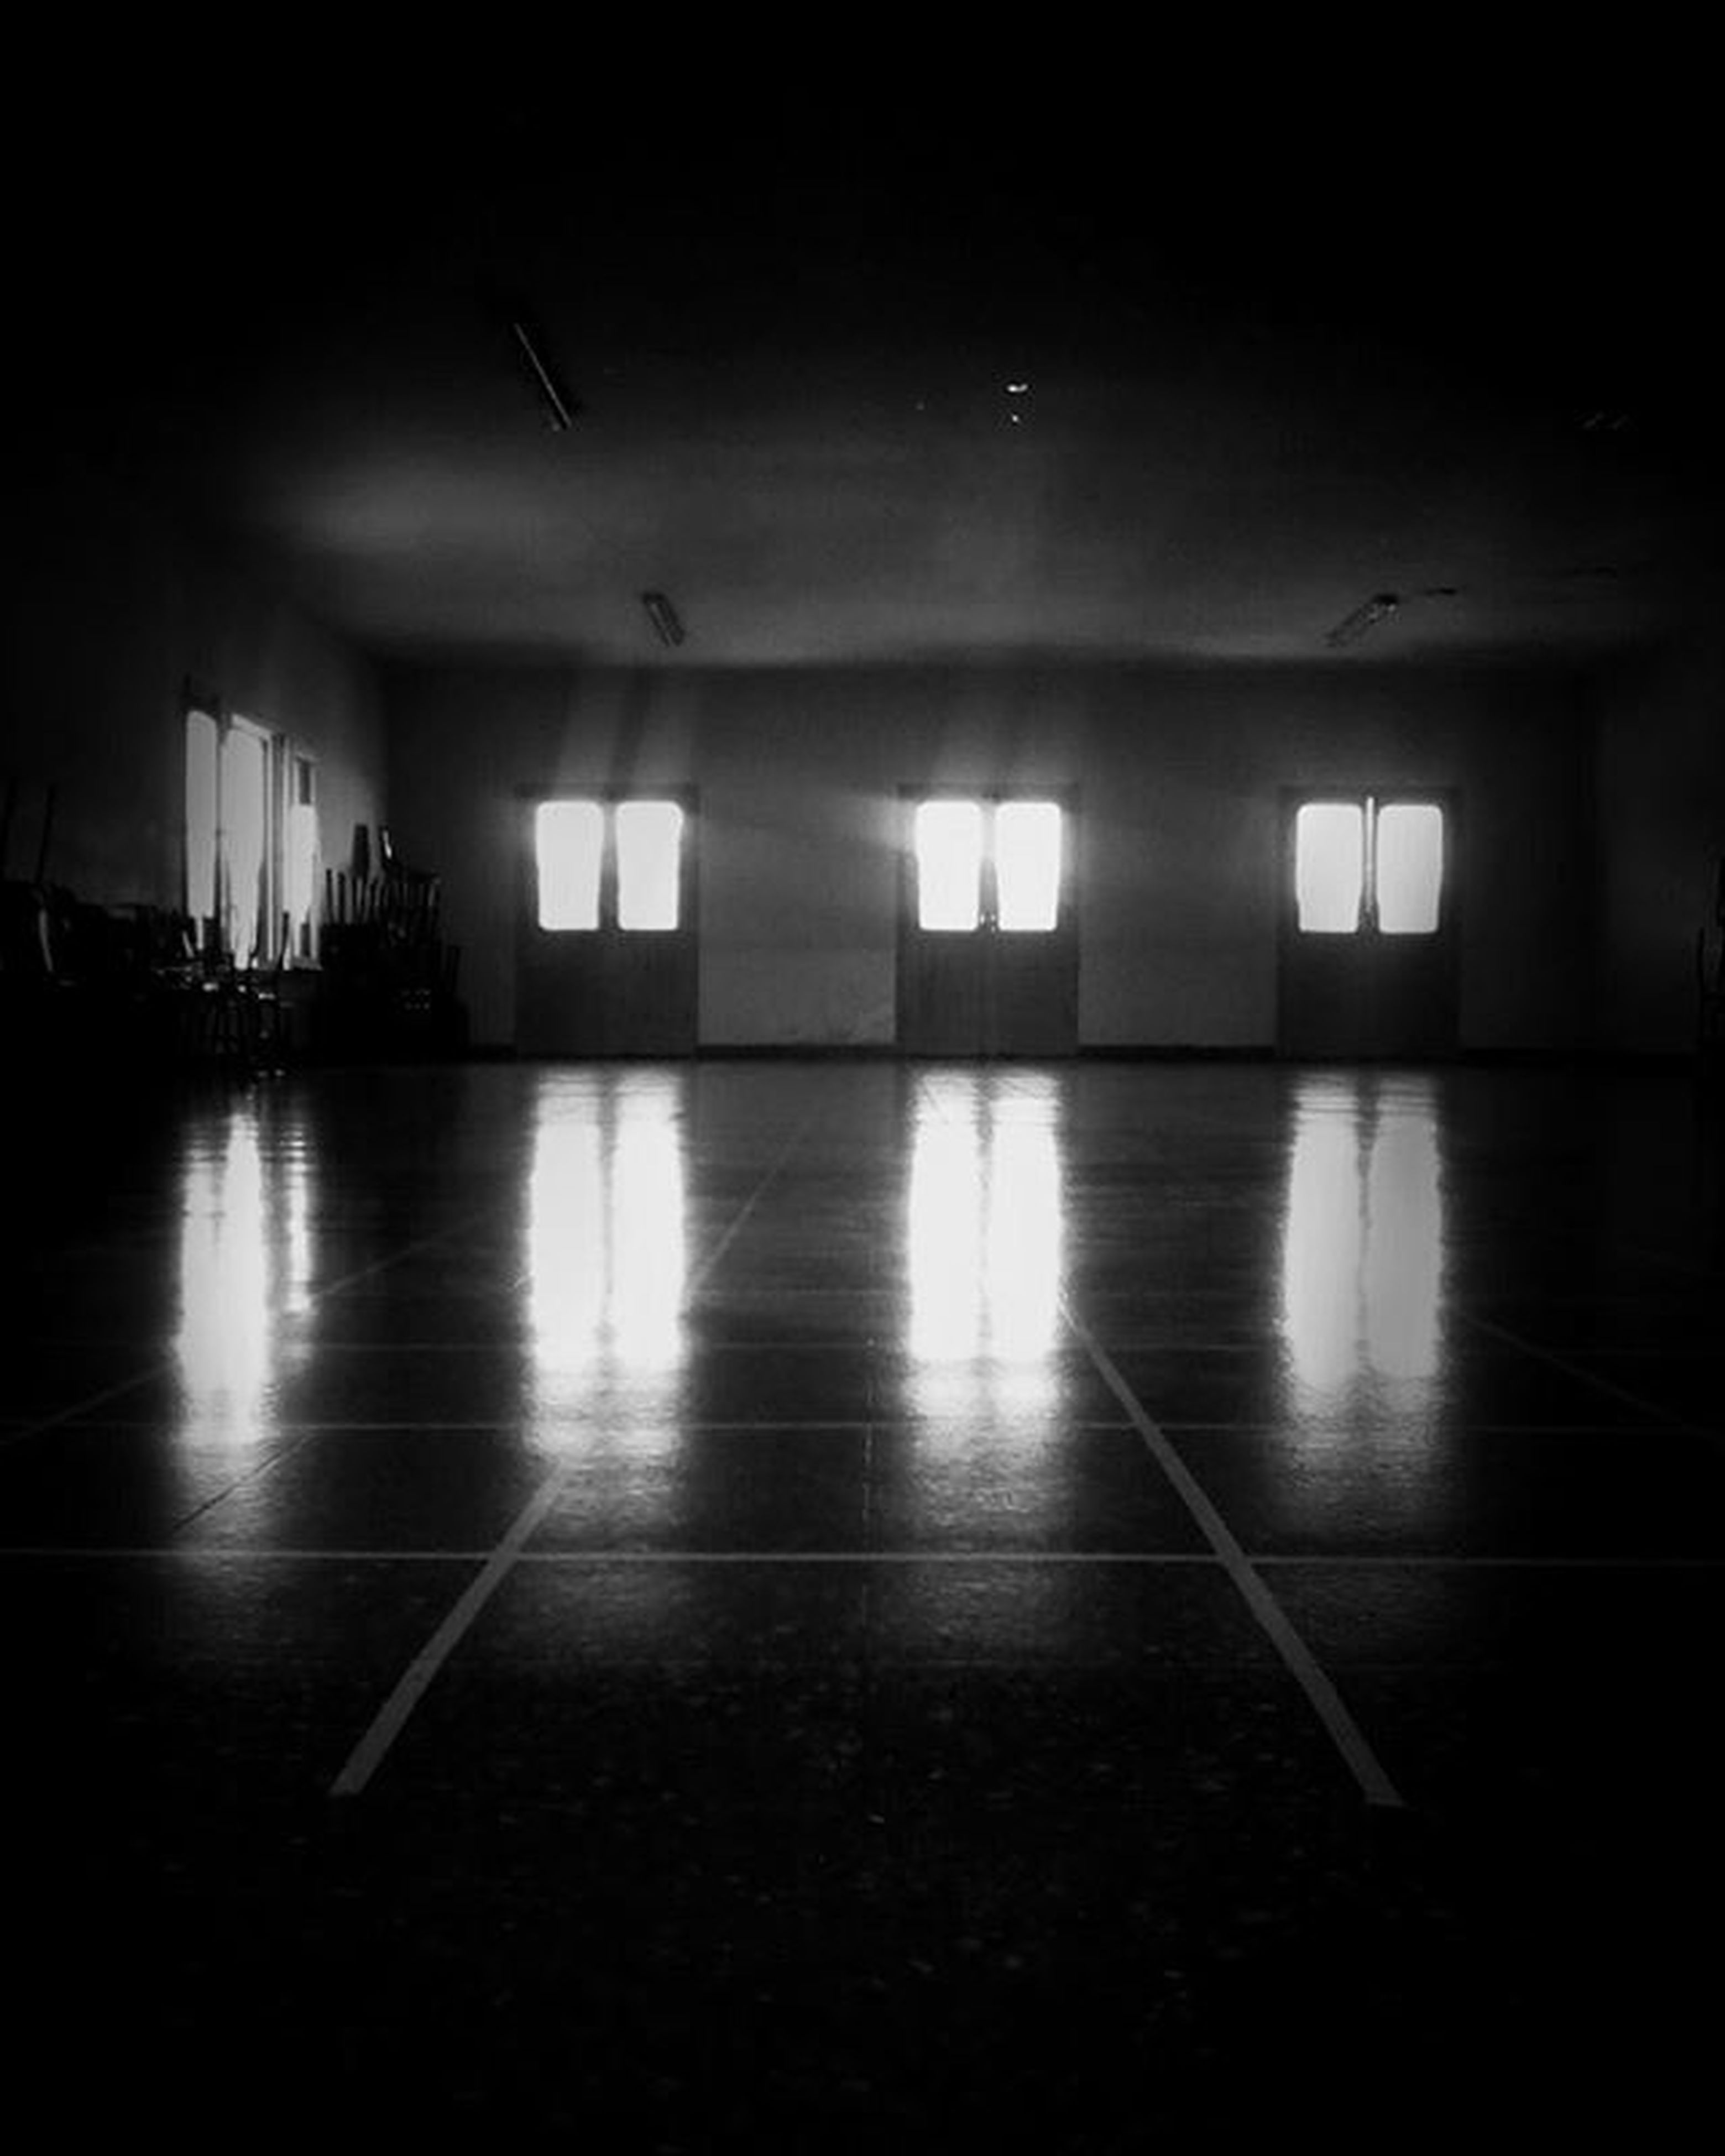 indoors, illuminated, architecture, flooring, built structure, corridor, empty, ceiling, tiled floor, lighting equipment, the way forward, reflection, absence, interior, building, floor, window, wall - building feature, tile, light - natural phenomenon